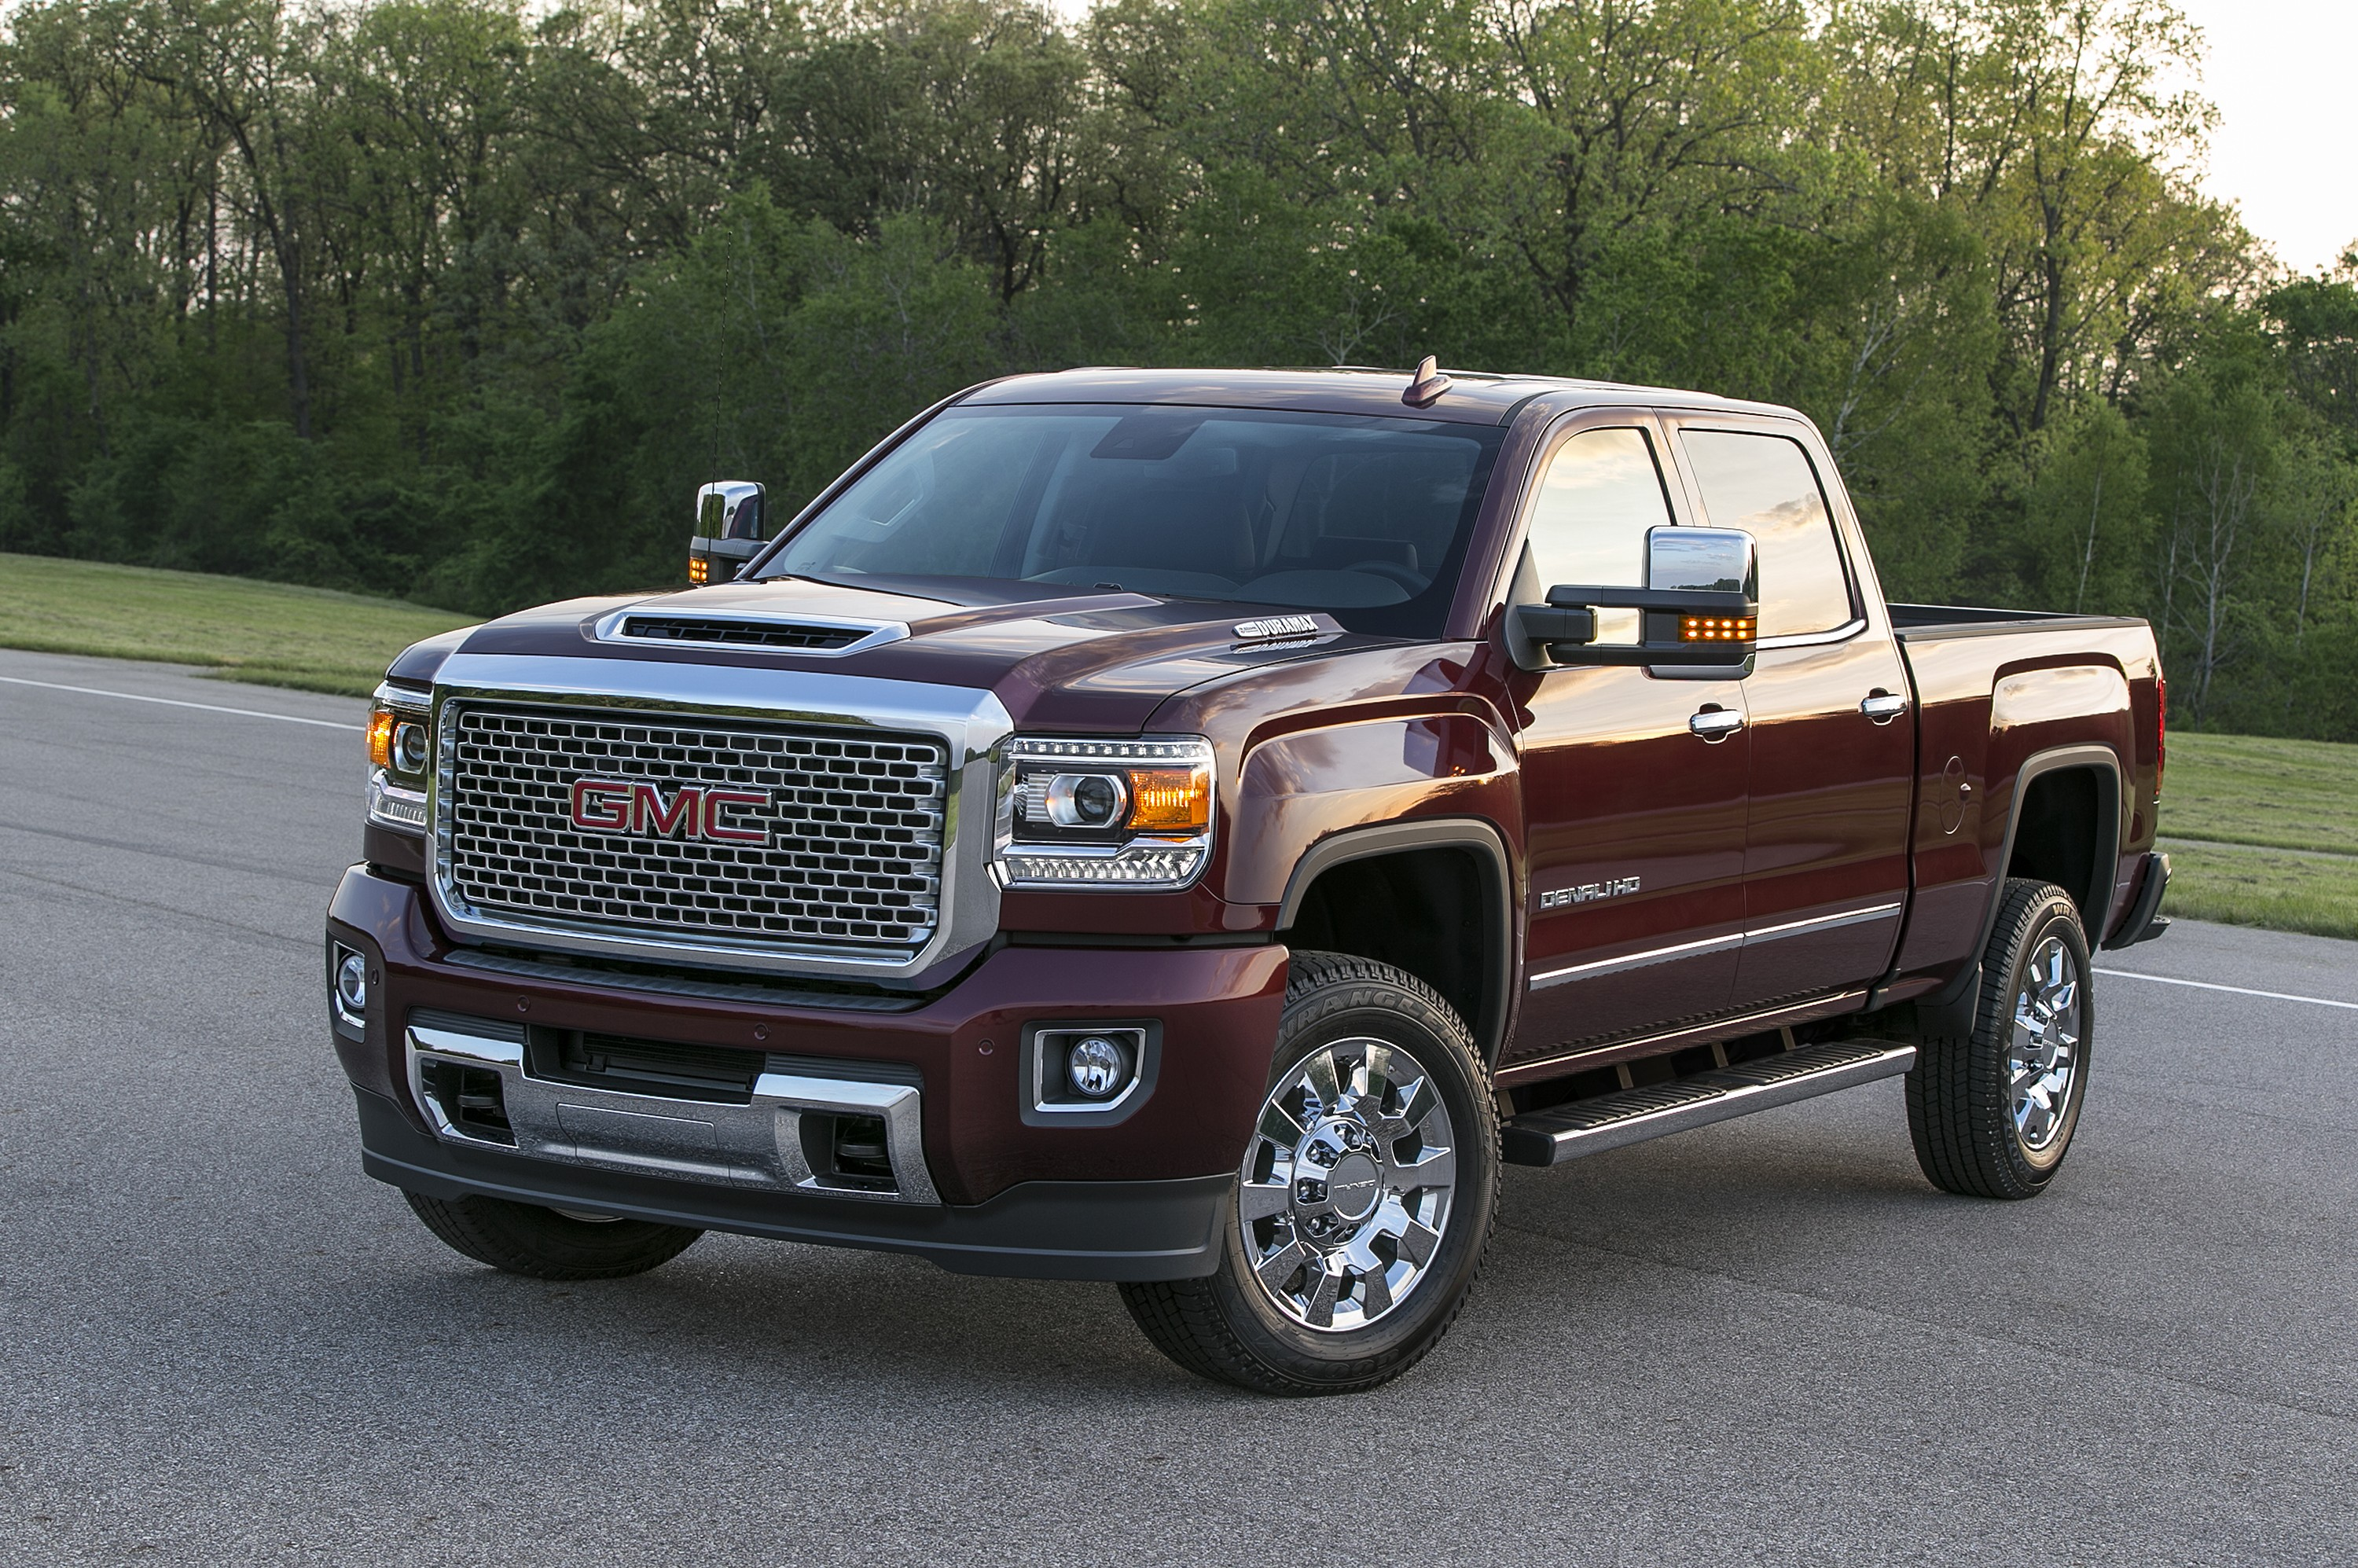 emissions subscribe with our alleged duramax to suit gm slapped for action class diesel chevrolet cheating silverado newsletter